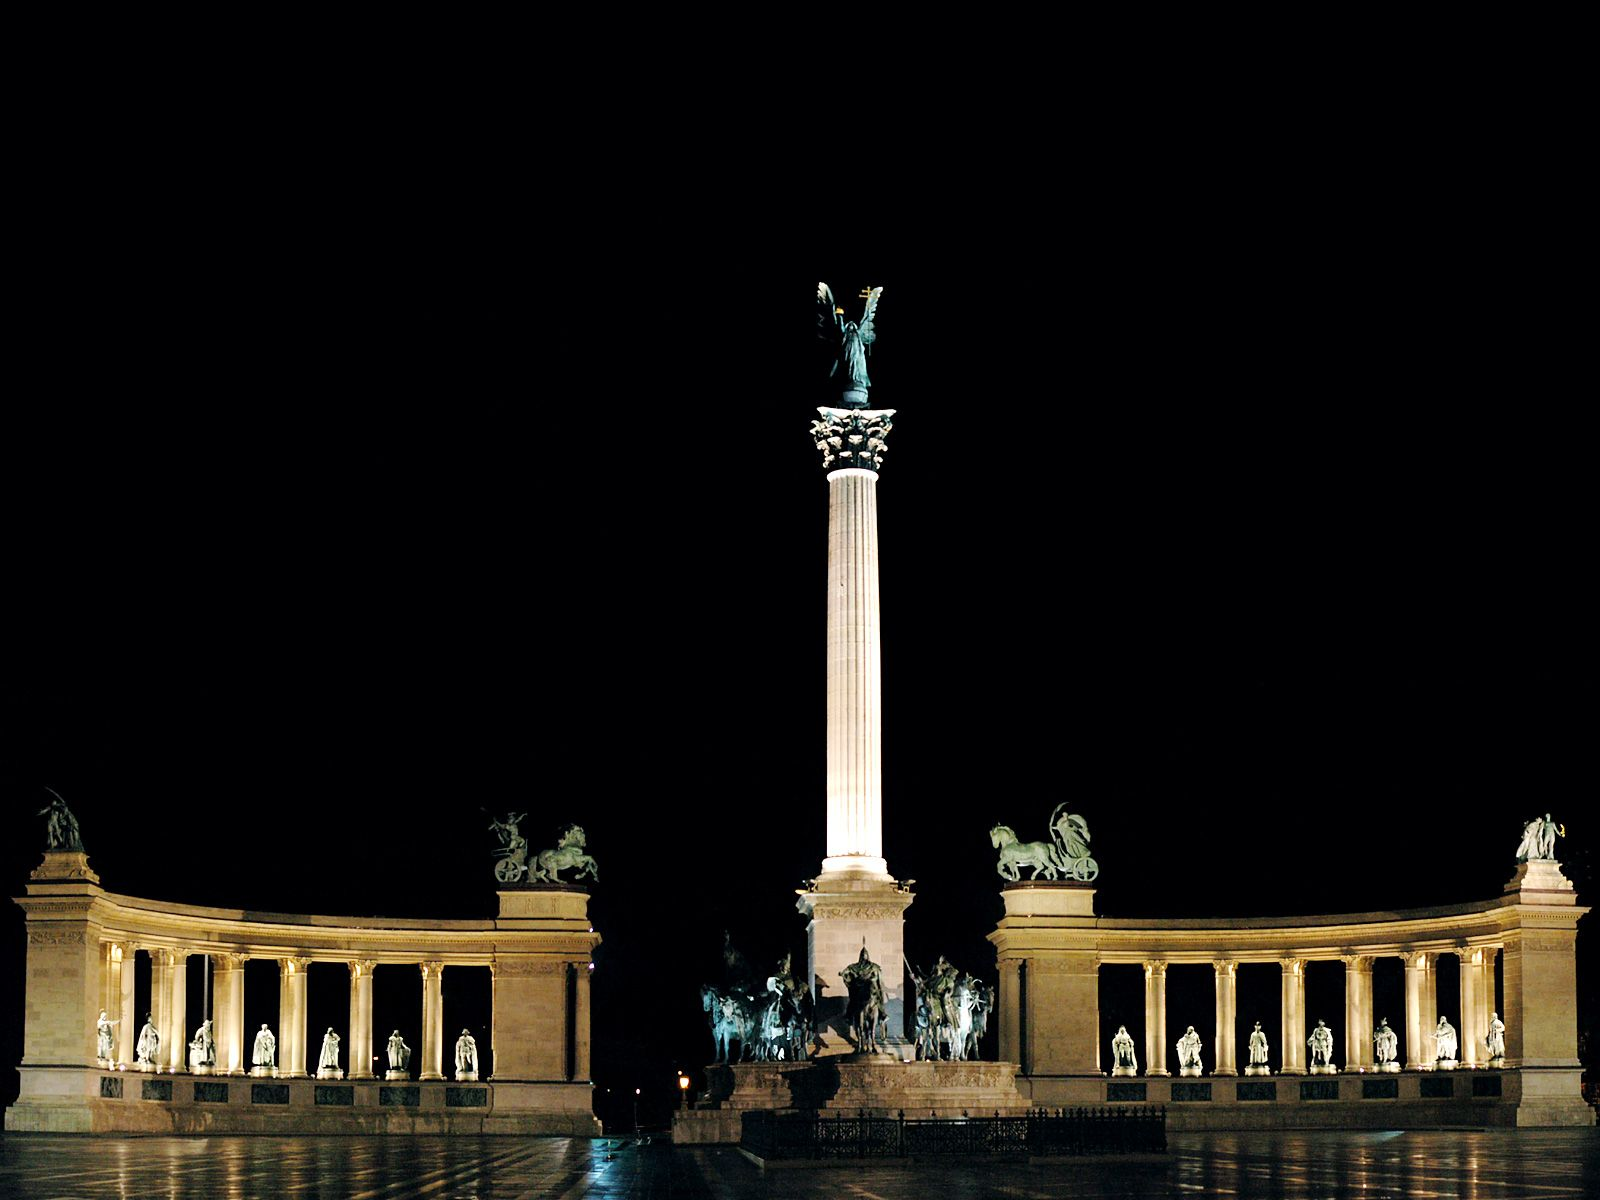 budapest-monument-at-night-hungary